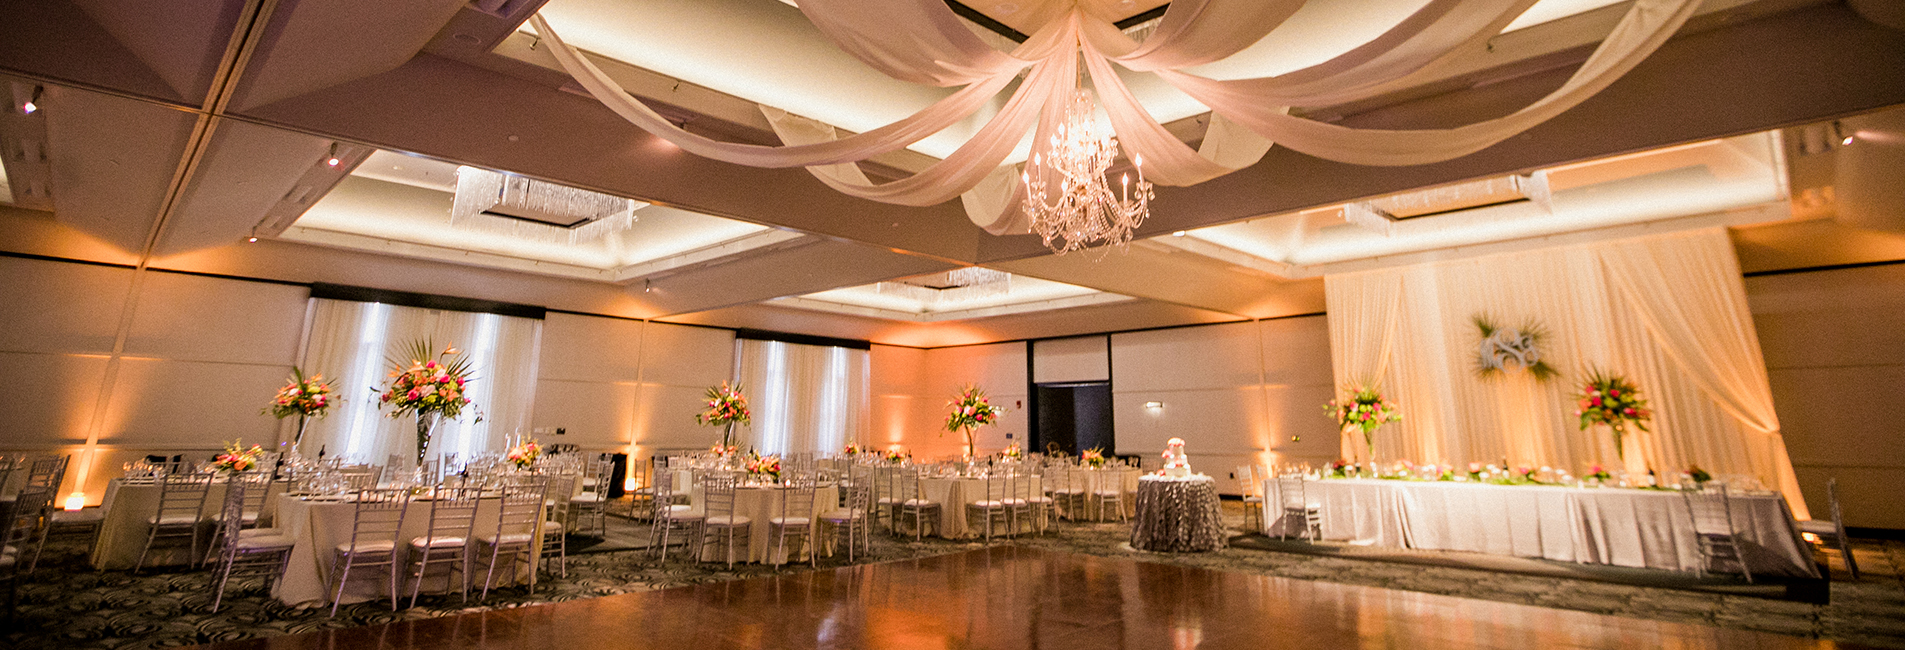 south bend indiana wedding venue